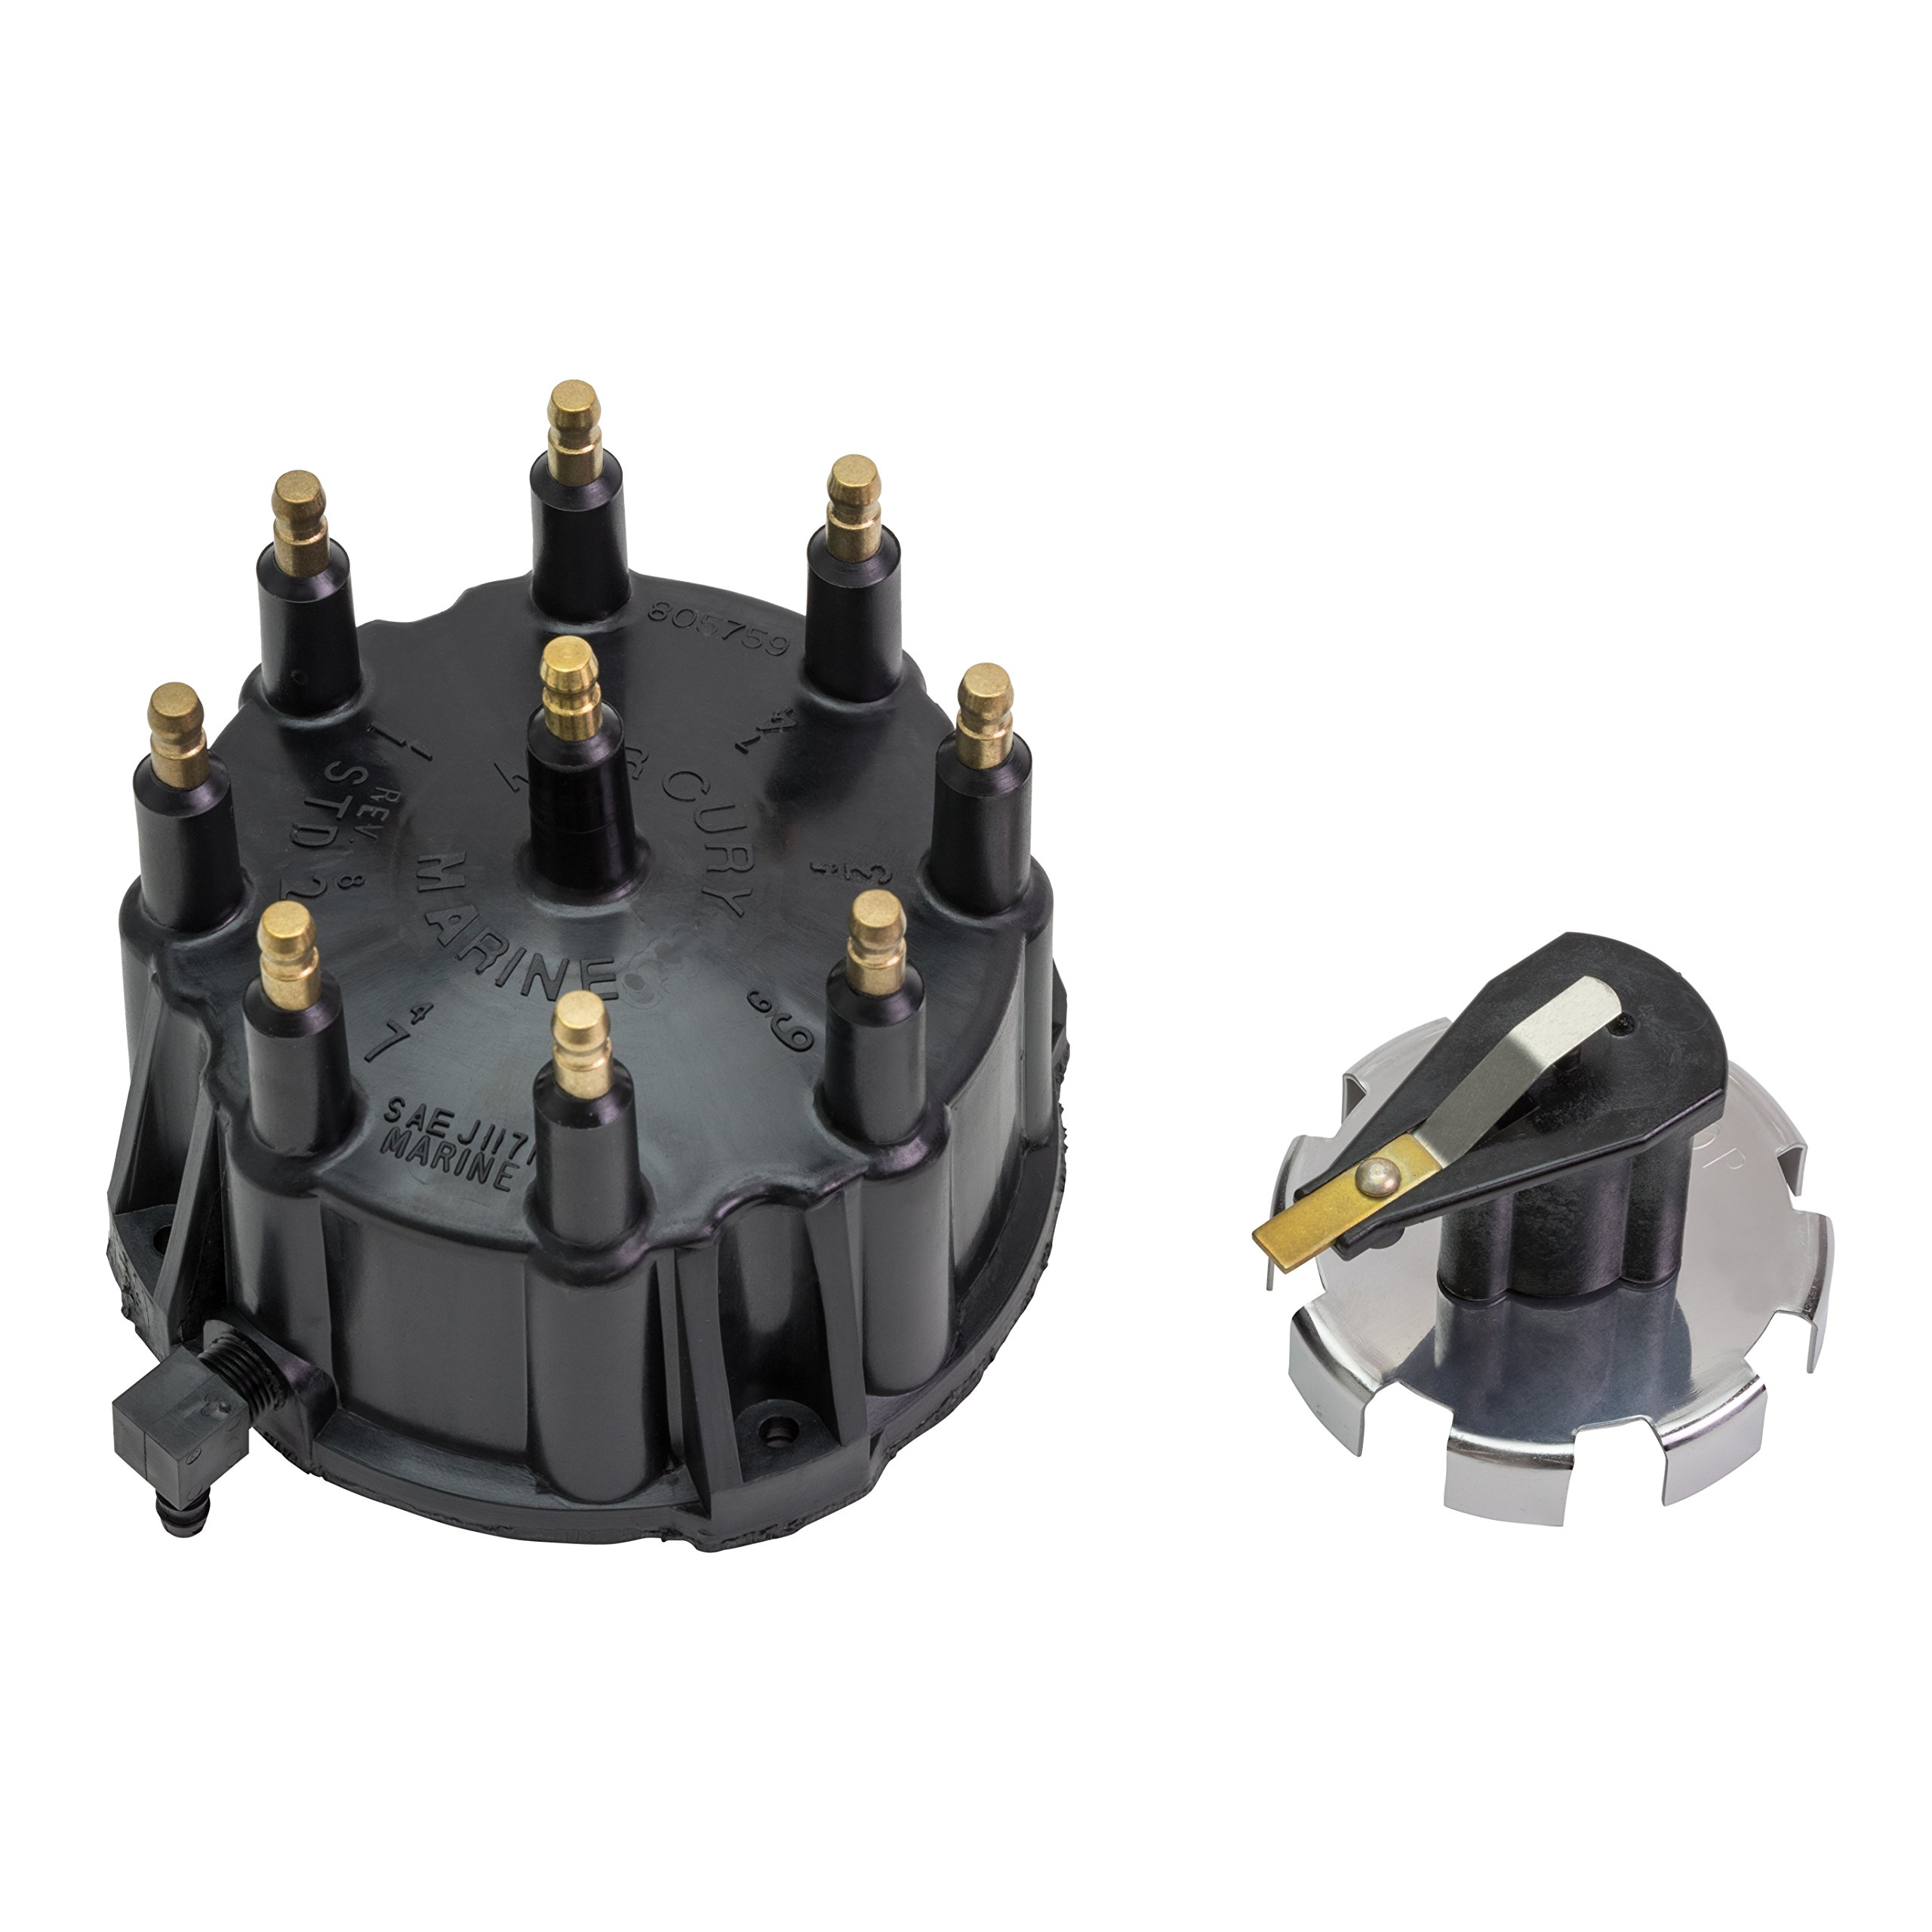 Quicksilver 805759Q3 Distributor Cap Kit - Marinized V-8 Engines by General Motors with Thunderbolt IV and V HEI Ignition Systems